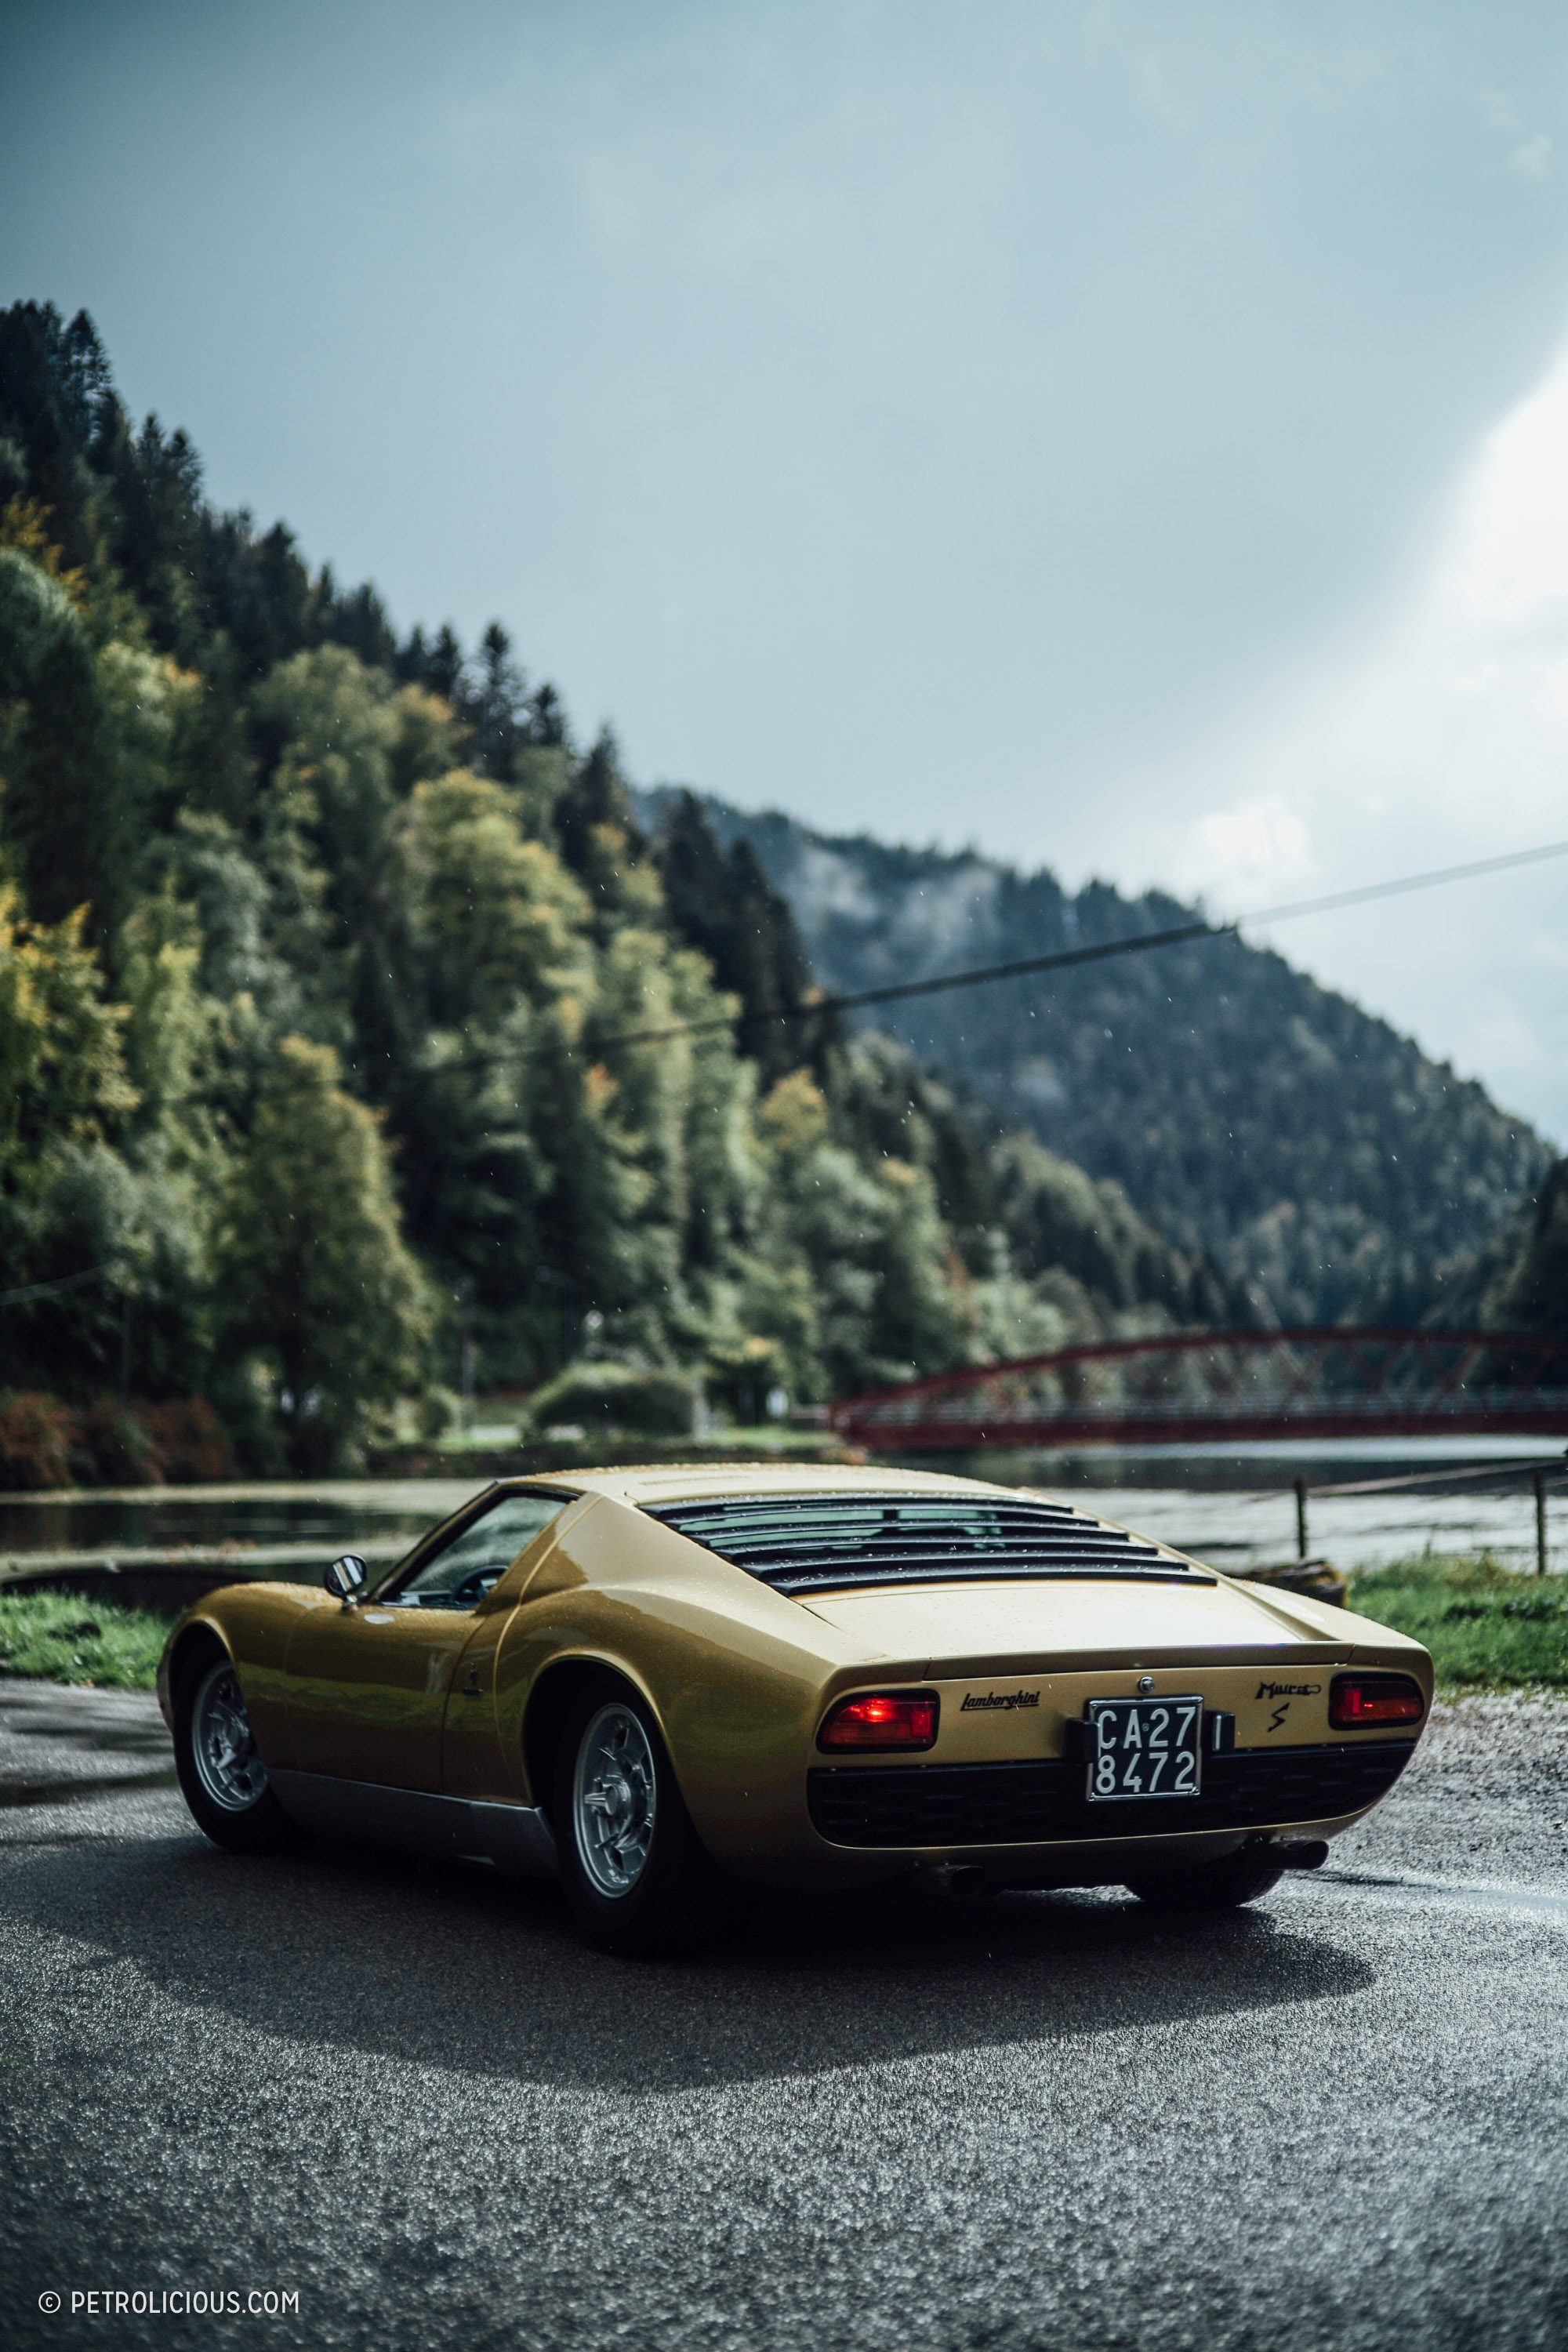 The First Ever Lamborghini Concours Was An Over The Top